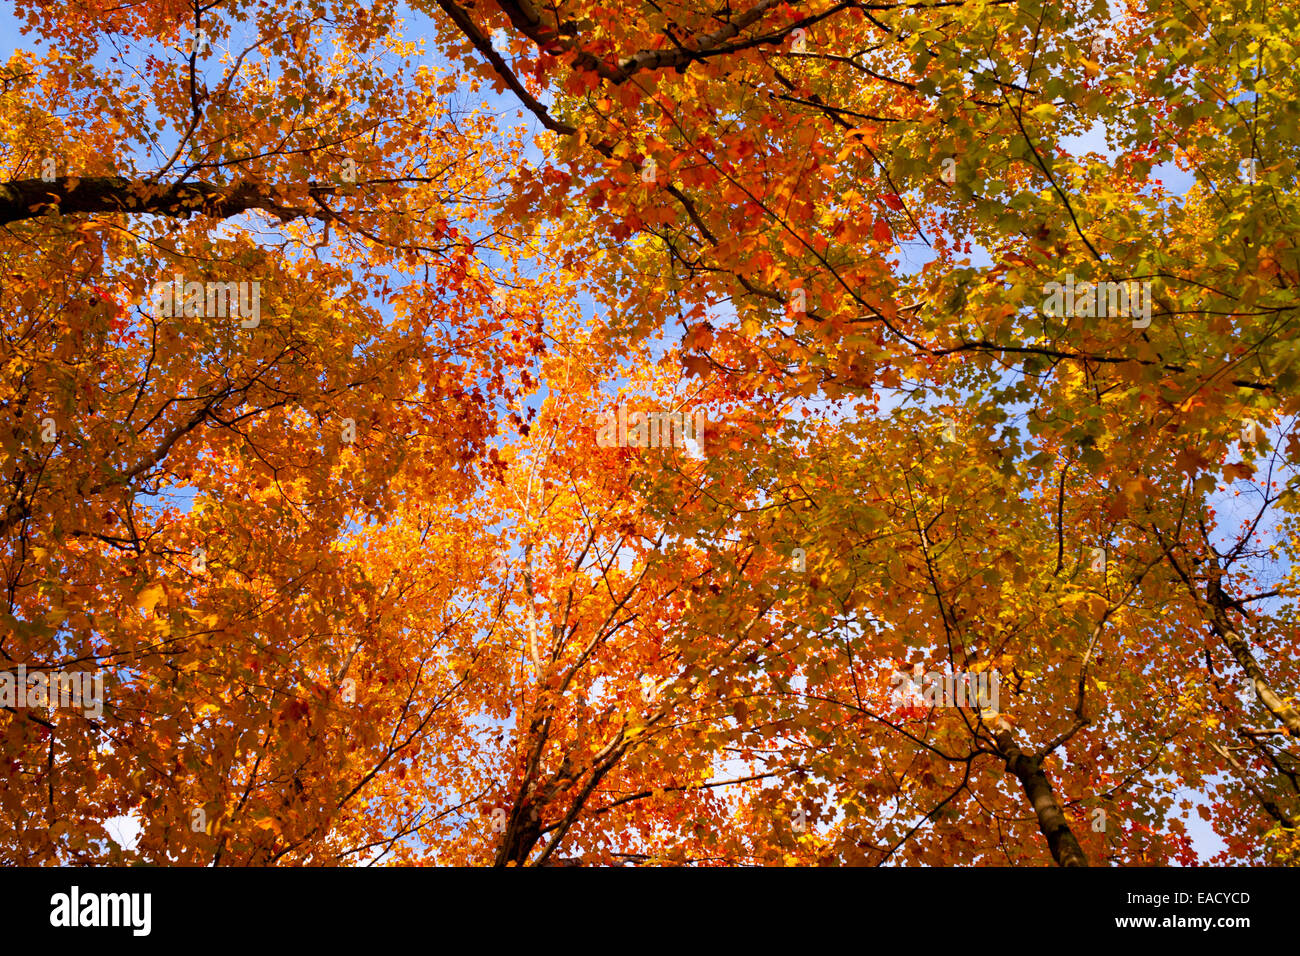 Maple trees acer with bright autumn coloured leaves sutton maple trees acer with bright autumn coloured leaves sutton eastern townships quebec province canada sciox Choice Image